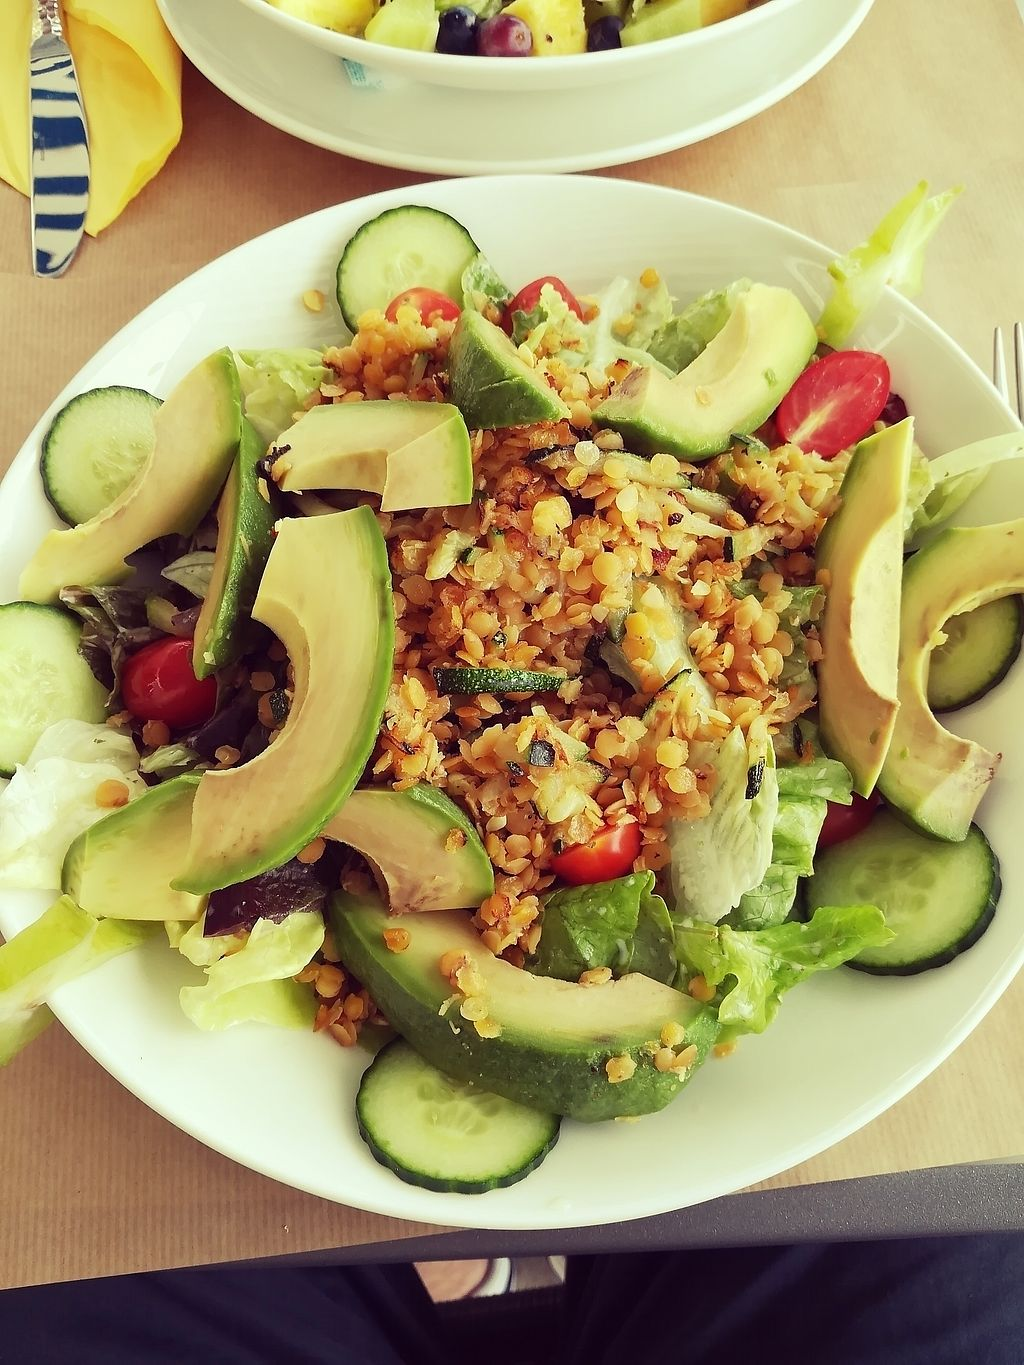 """Photo of Metschekescht  by <a href=""""/members/profile/JeronDewulf"""">JeronDewulf</a> <br/>vegan salade  <br/> July 19, 2017  - <a href='/contact/abuse/image/47185/282101'>Report</a>"""